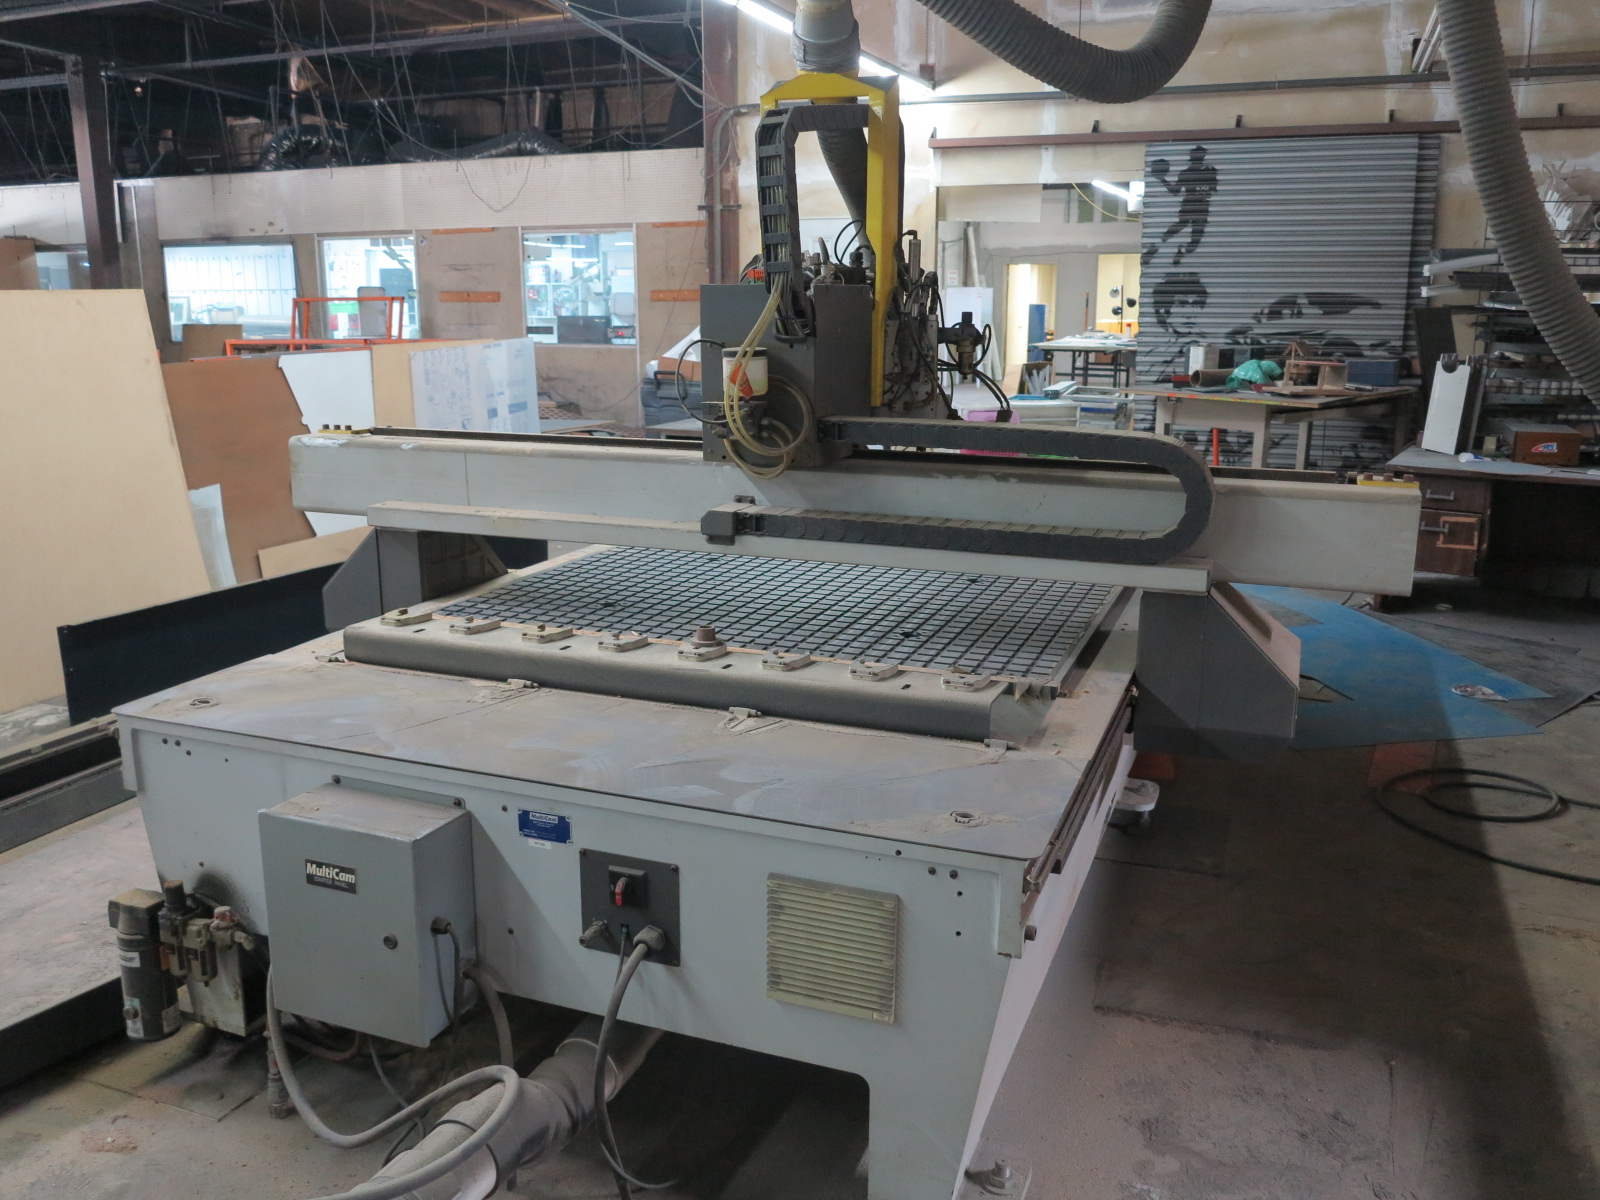 "2011 MULTICAM 3000 SERIES CNC ROUTER, 60""X122"", POSITION RACK TYPE TOOL CHANGER, S/N 3-204-R-PF08407 - Image 4 of 6"